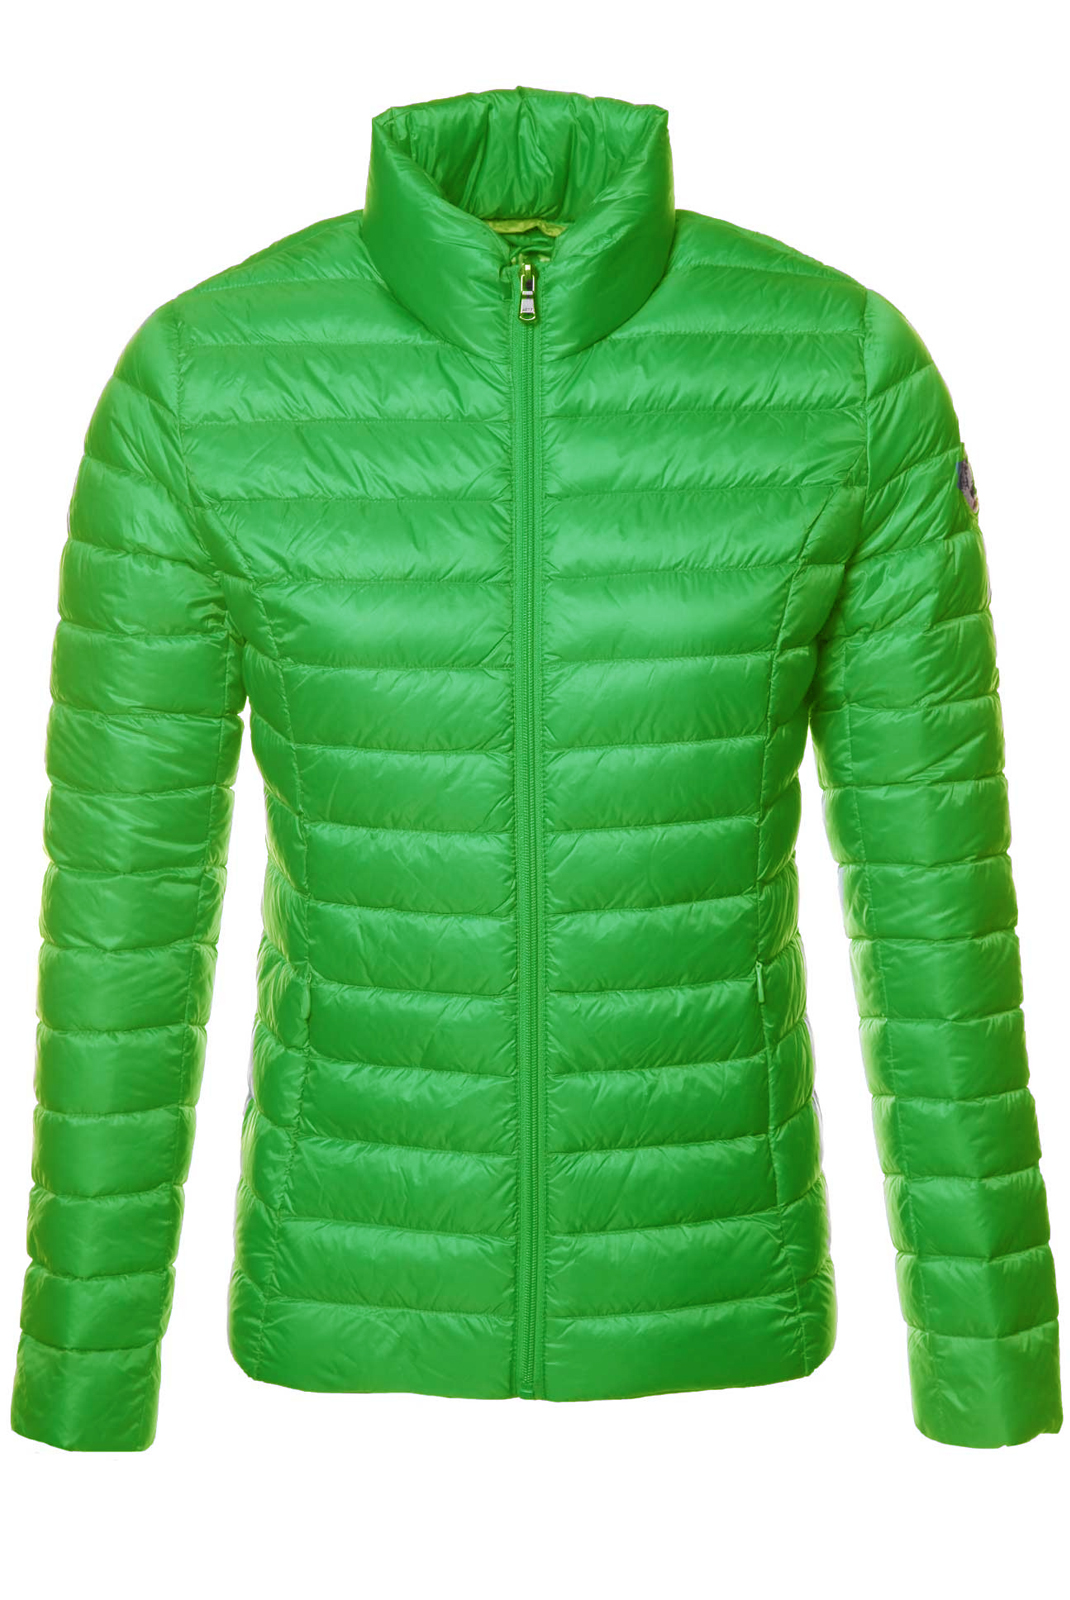 Blouson  Just over the top CHA 200 GREEN FLUO